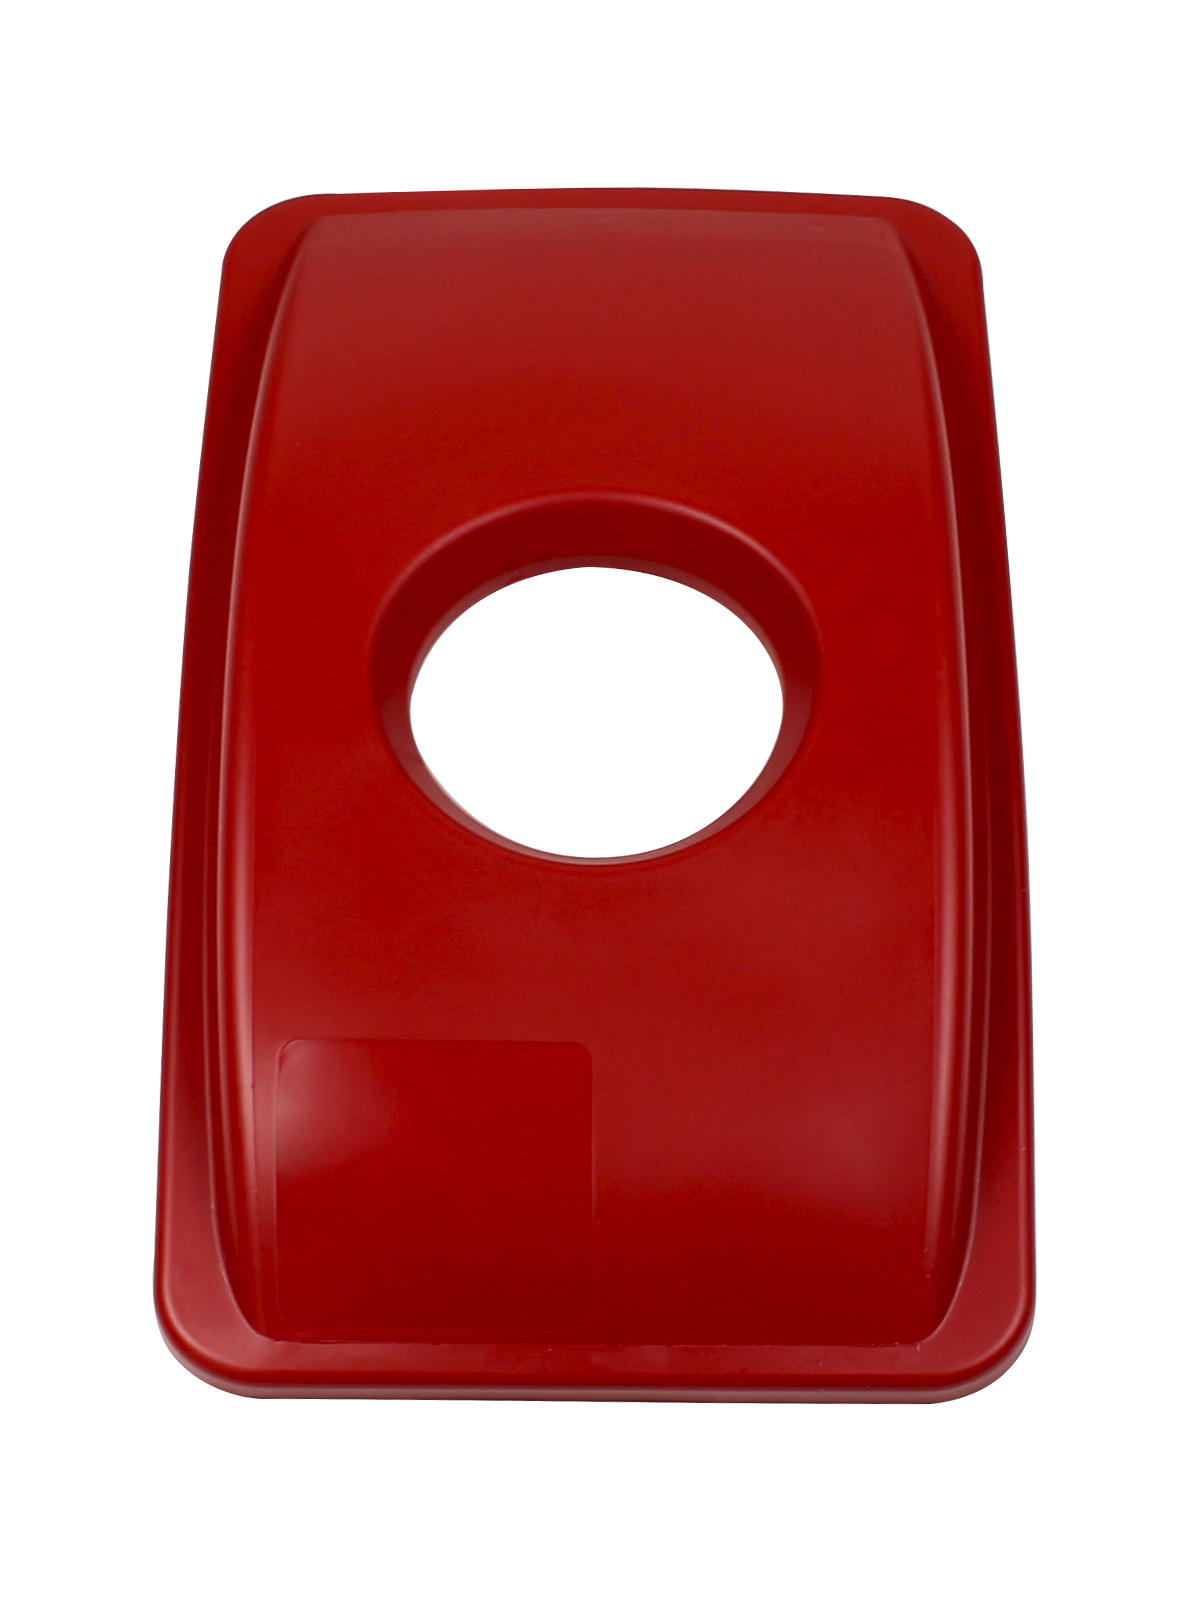 WASTE WATCHER - Single - Lid - Circle - Red